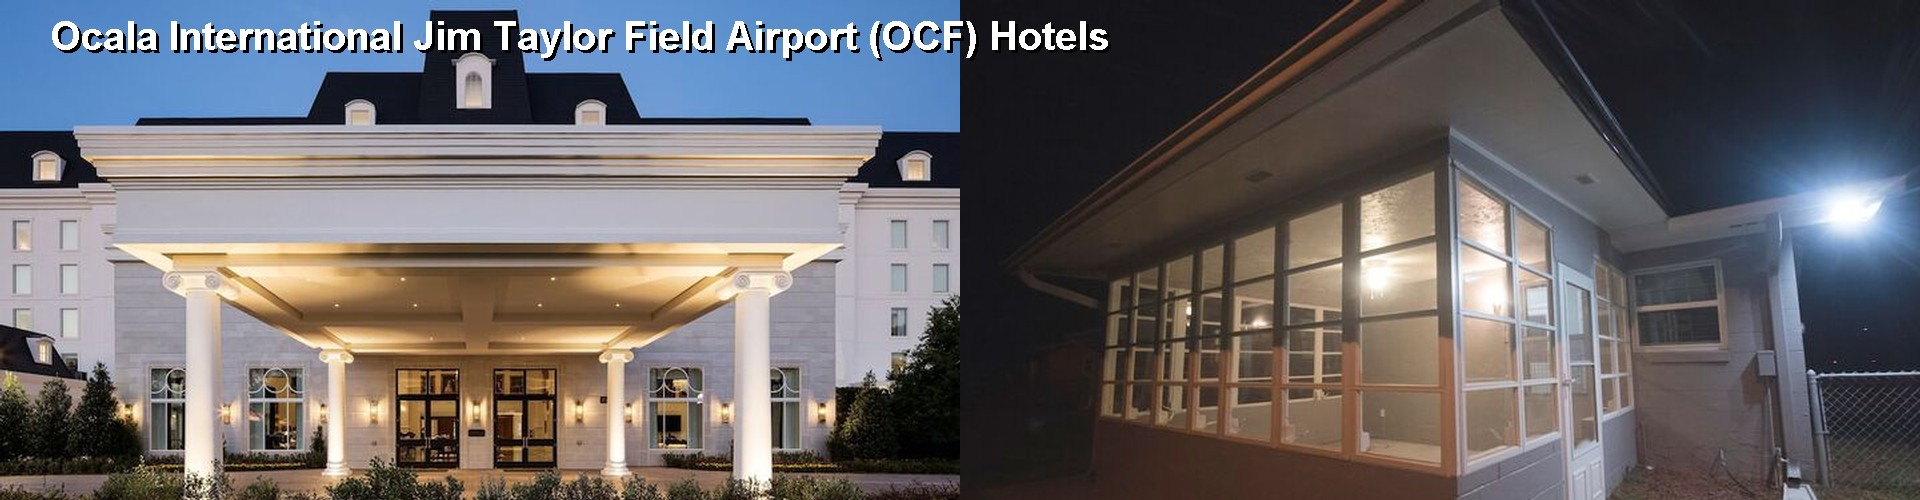 5 Best Hotels near Ocala International Jim Taylor Field Airport (OCF)